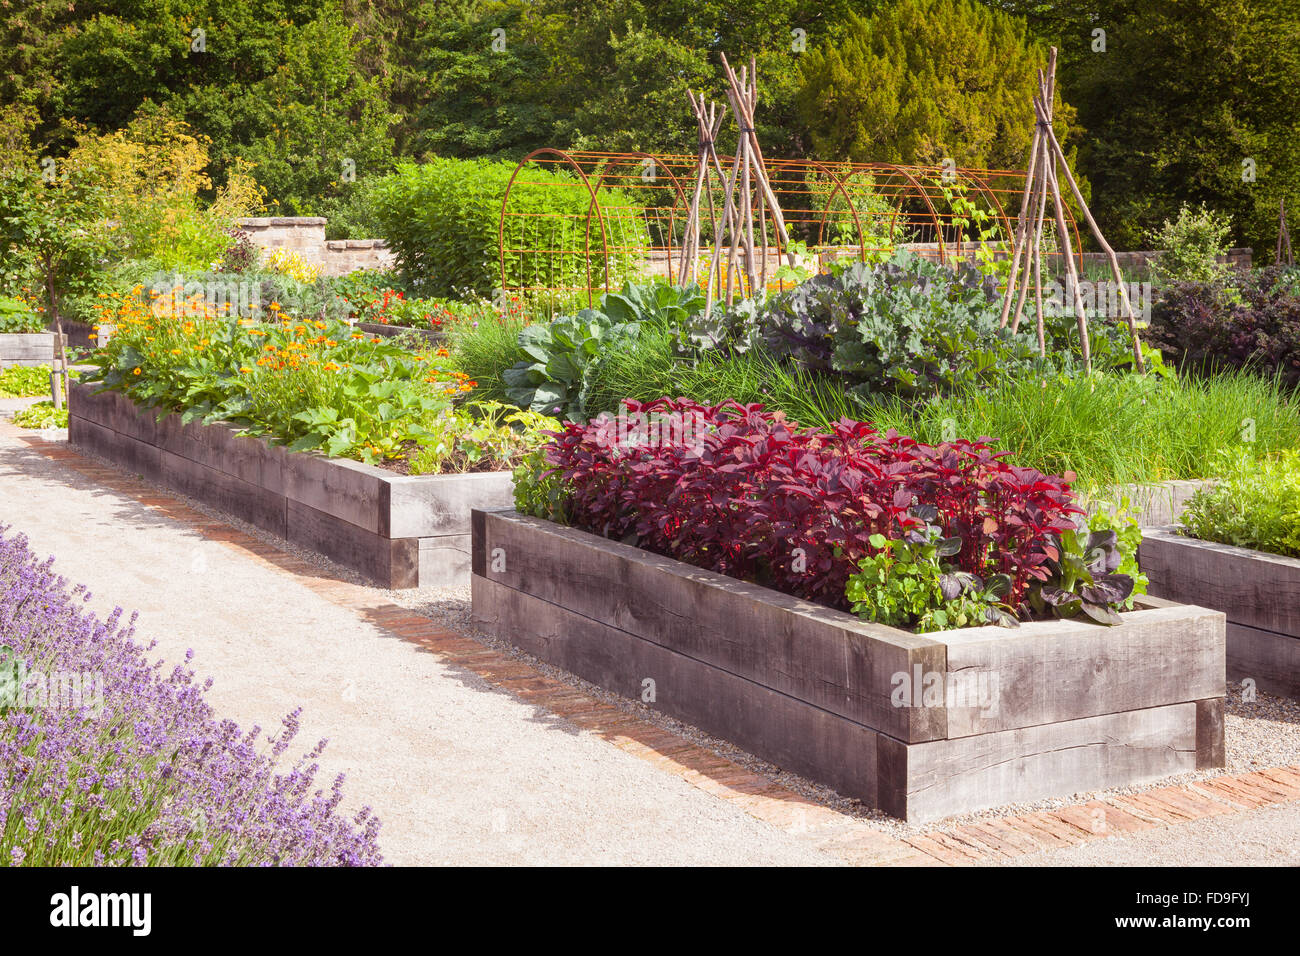 Picture of: Raised Vegetable Garden High Resolution Stock Photography And Images Alamy